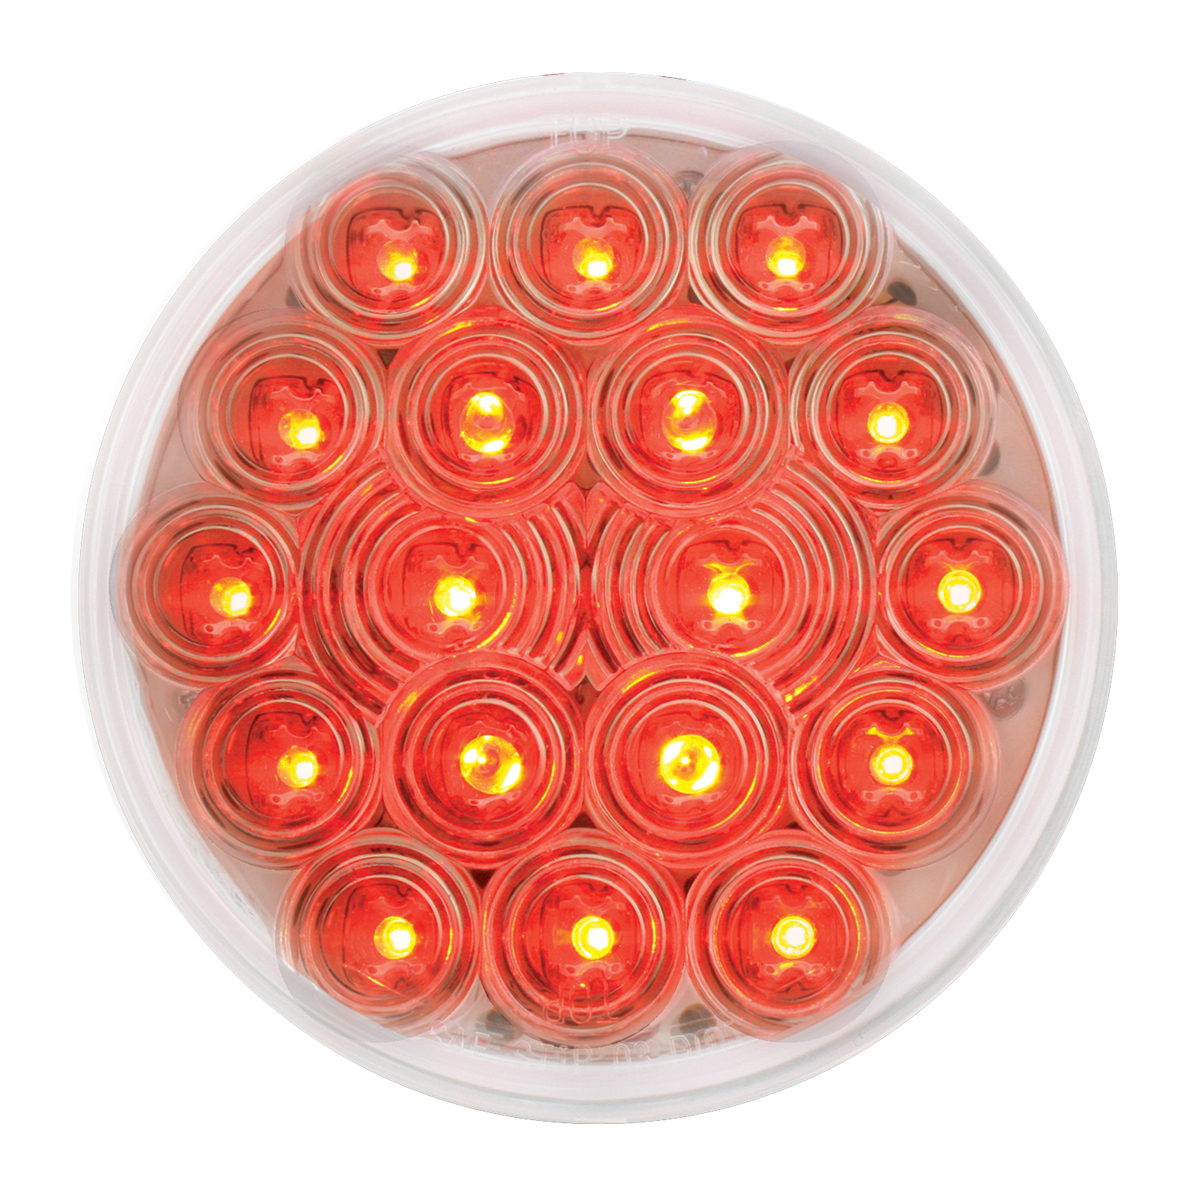 "#76453 - 4"" Round Fleet LED Flat Red/Clear Light"